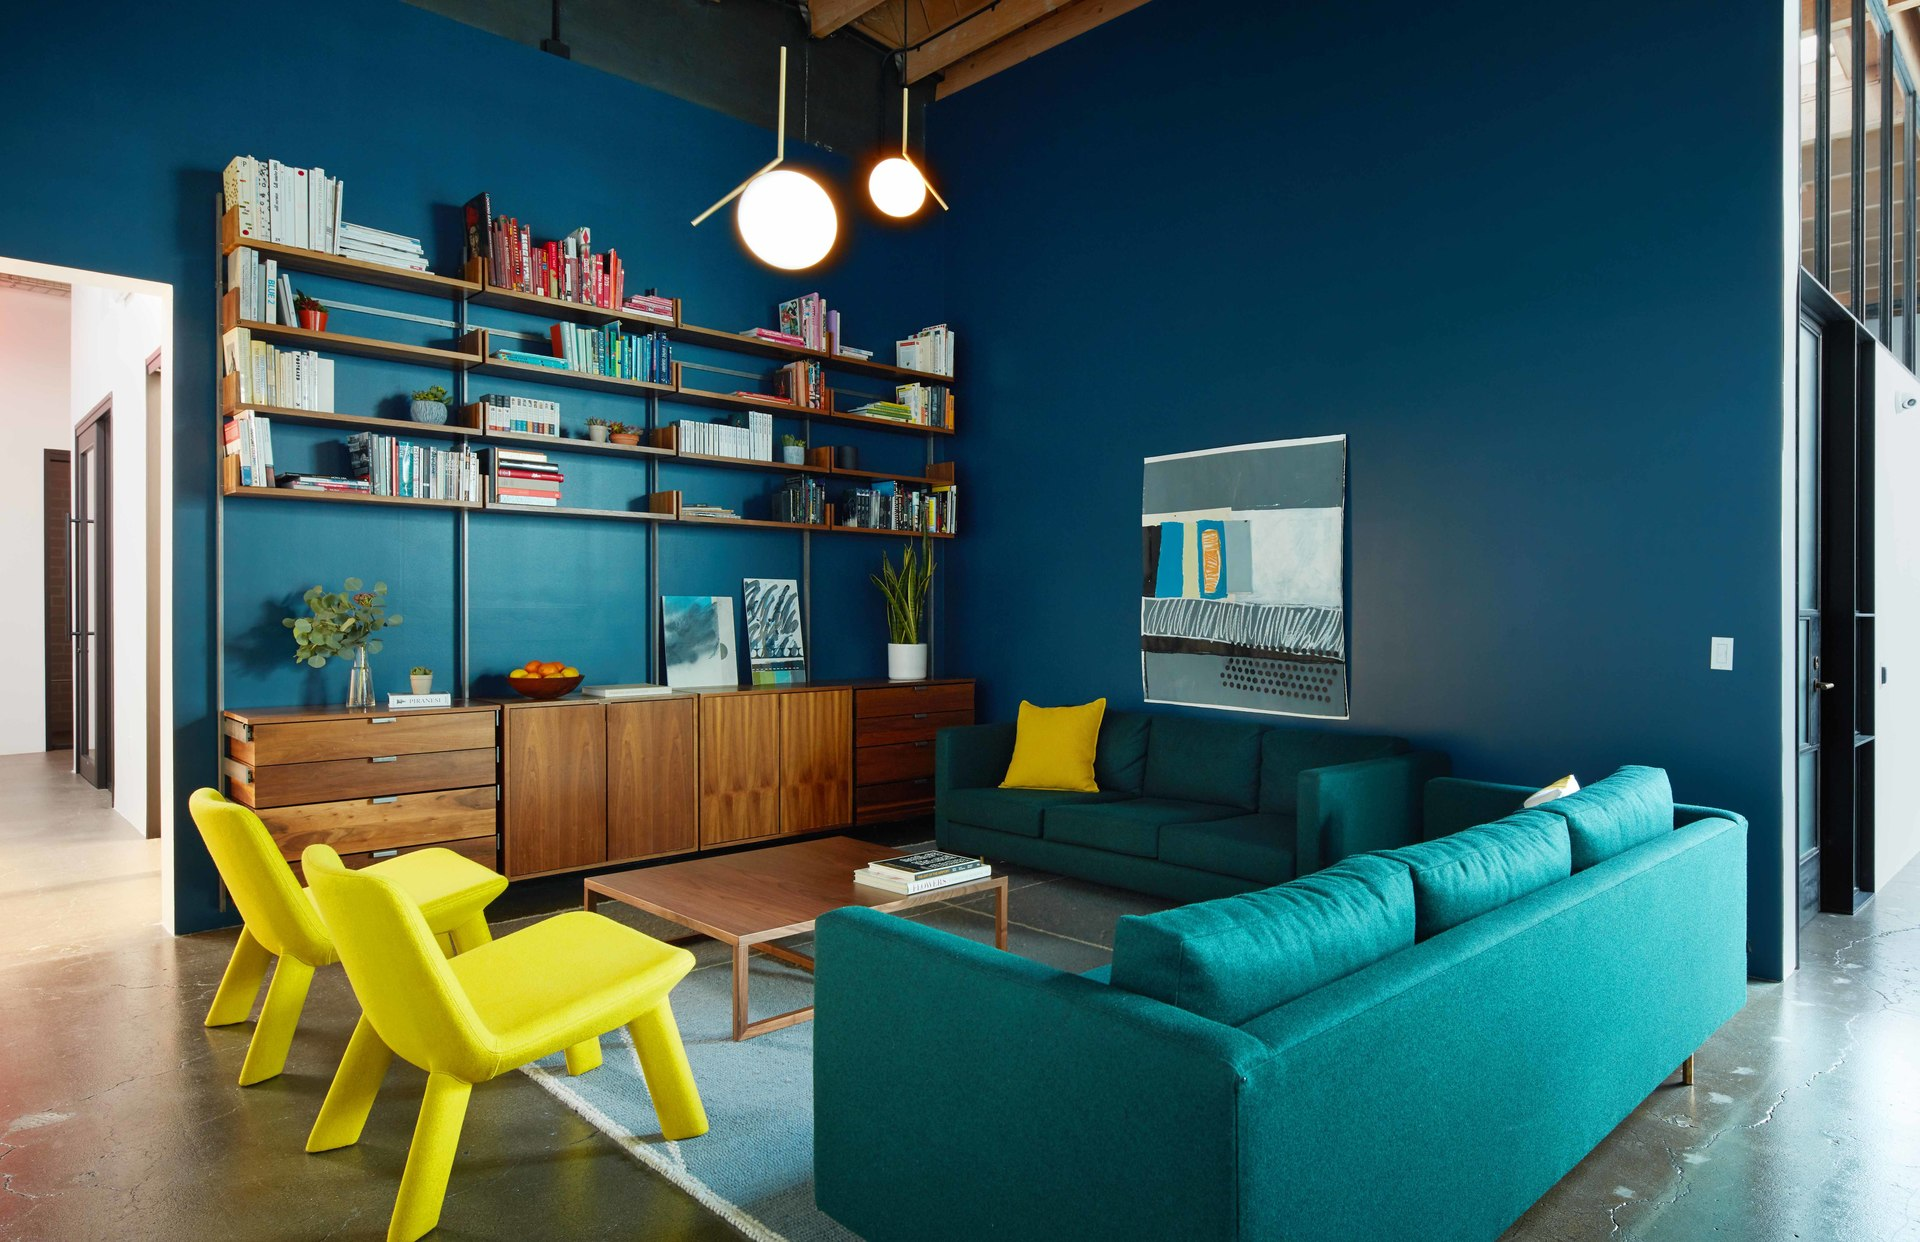 Meeting areas throughout the Psyop office include tables with benches that double for storage and others with couches, chairs and a lounge-like atmosphere.   Photography Credit: McNulty Photo